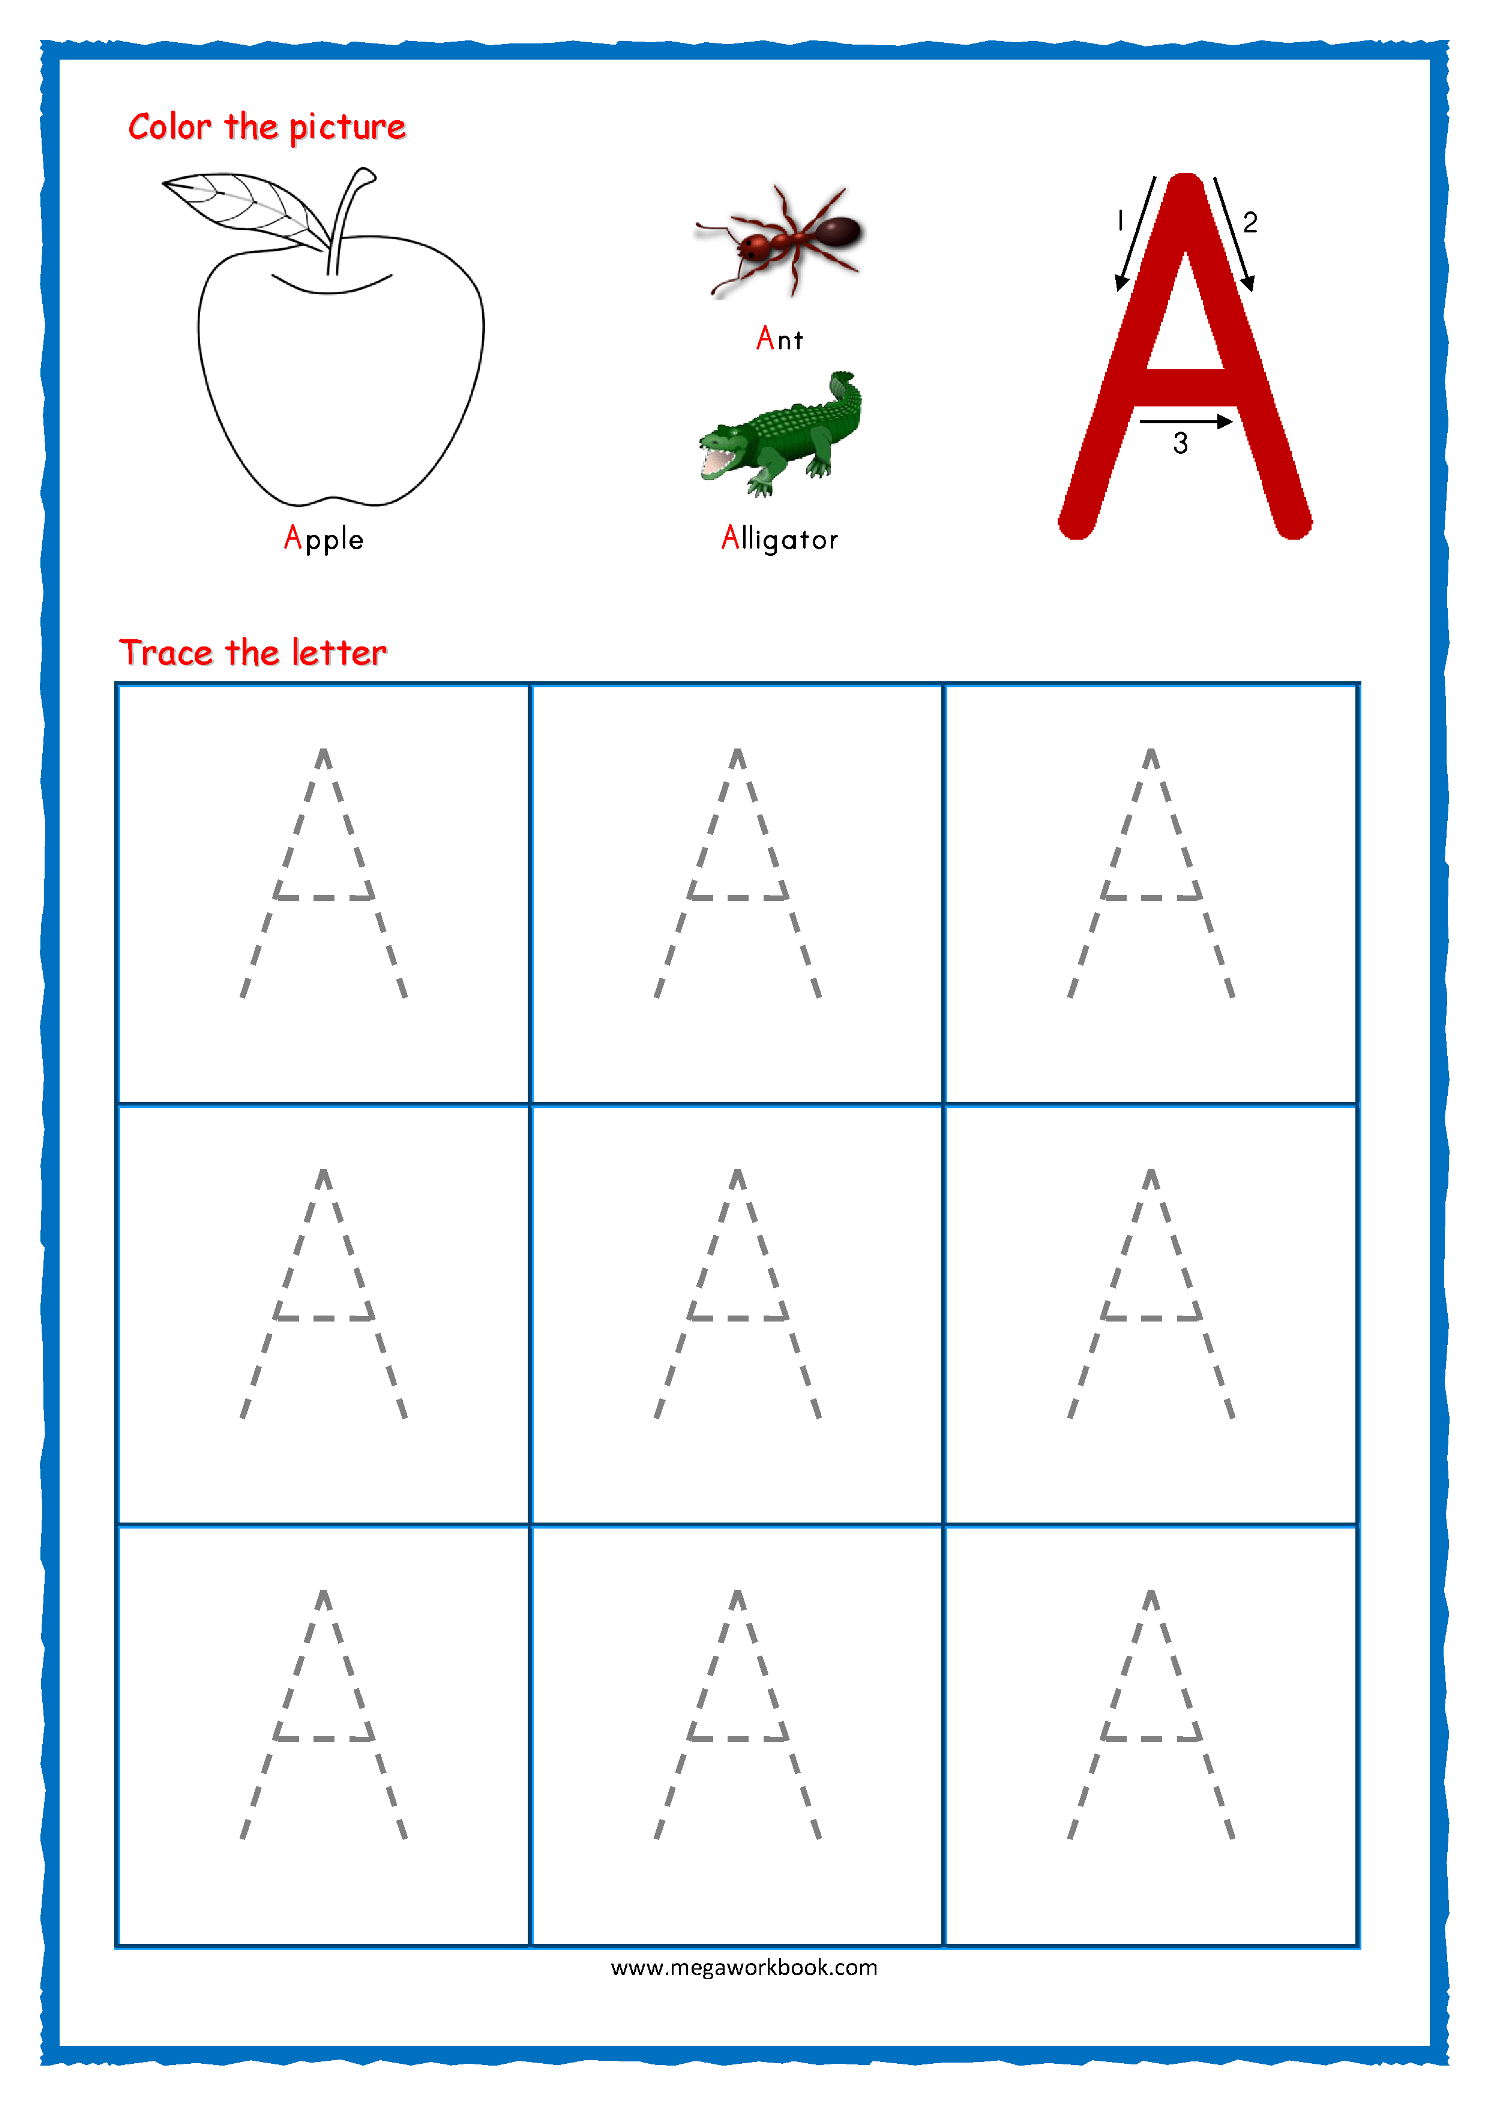 Preschool Worksheet Gallery Preschool Letter Tracing